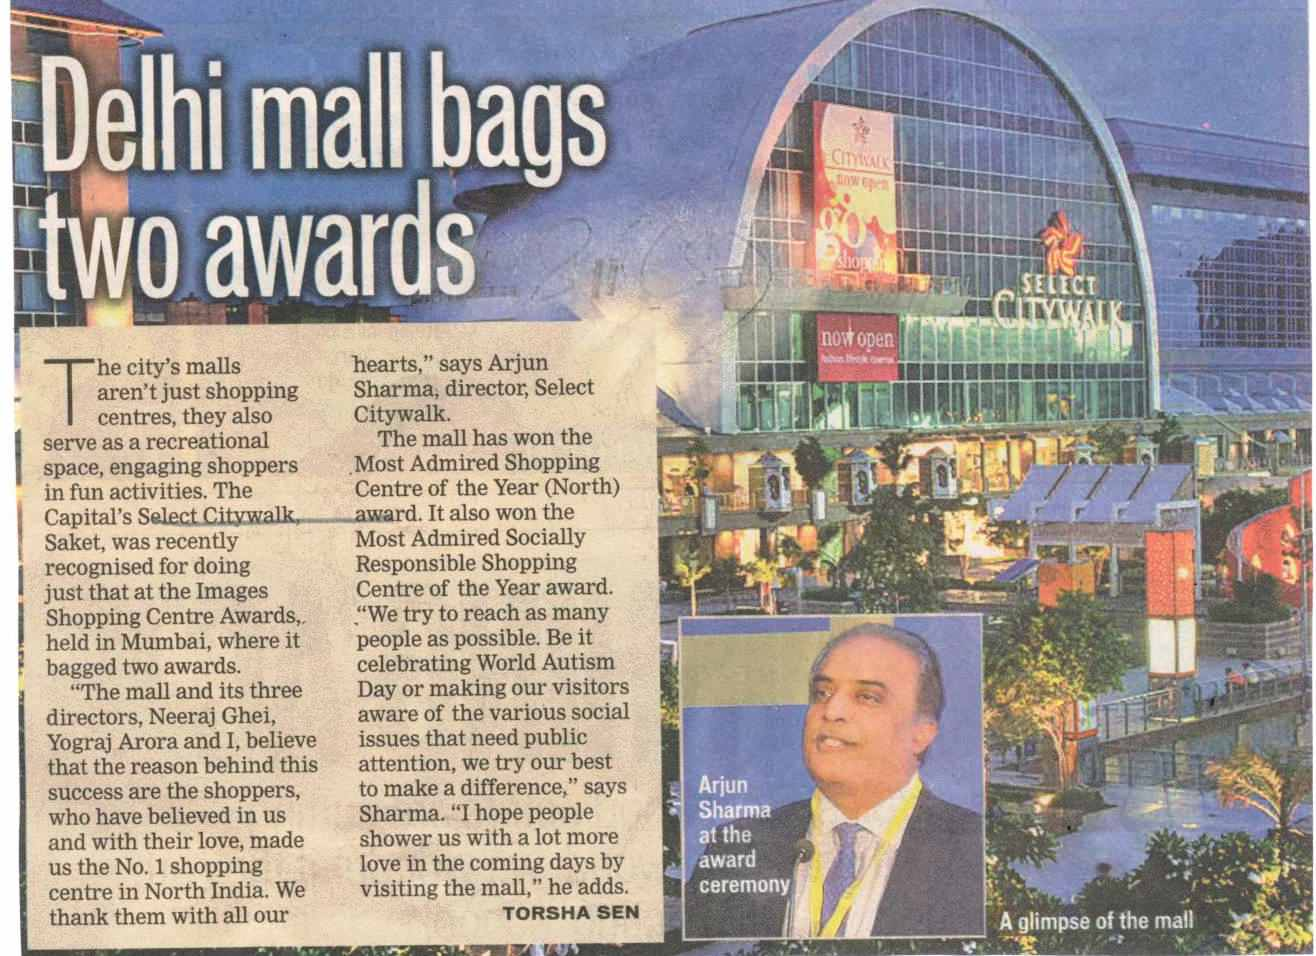 Delhi mall bags two awards